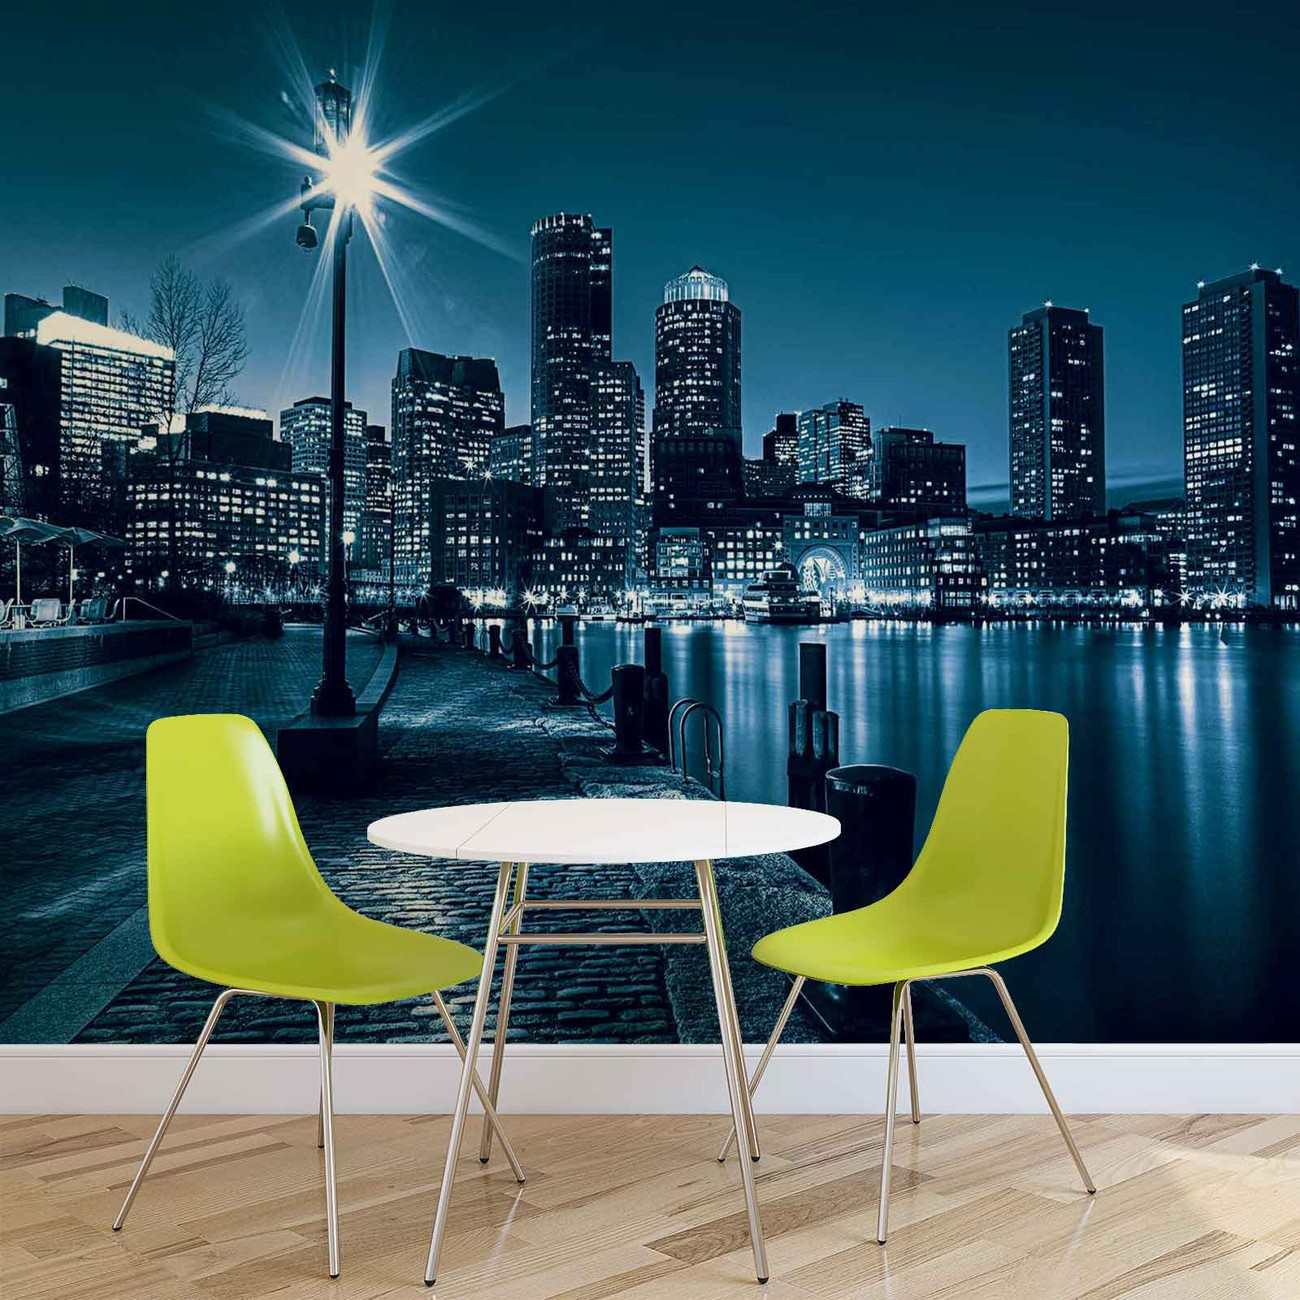 City boston skyline wall paper mural buy at europosters for Cityscape murals photo wall mural